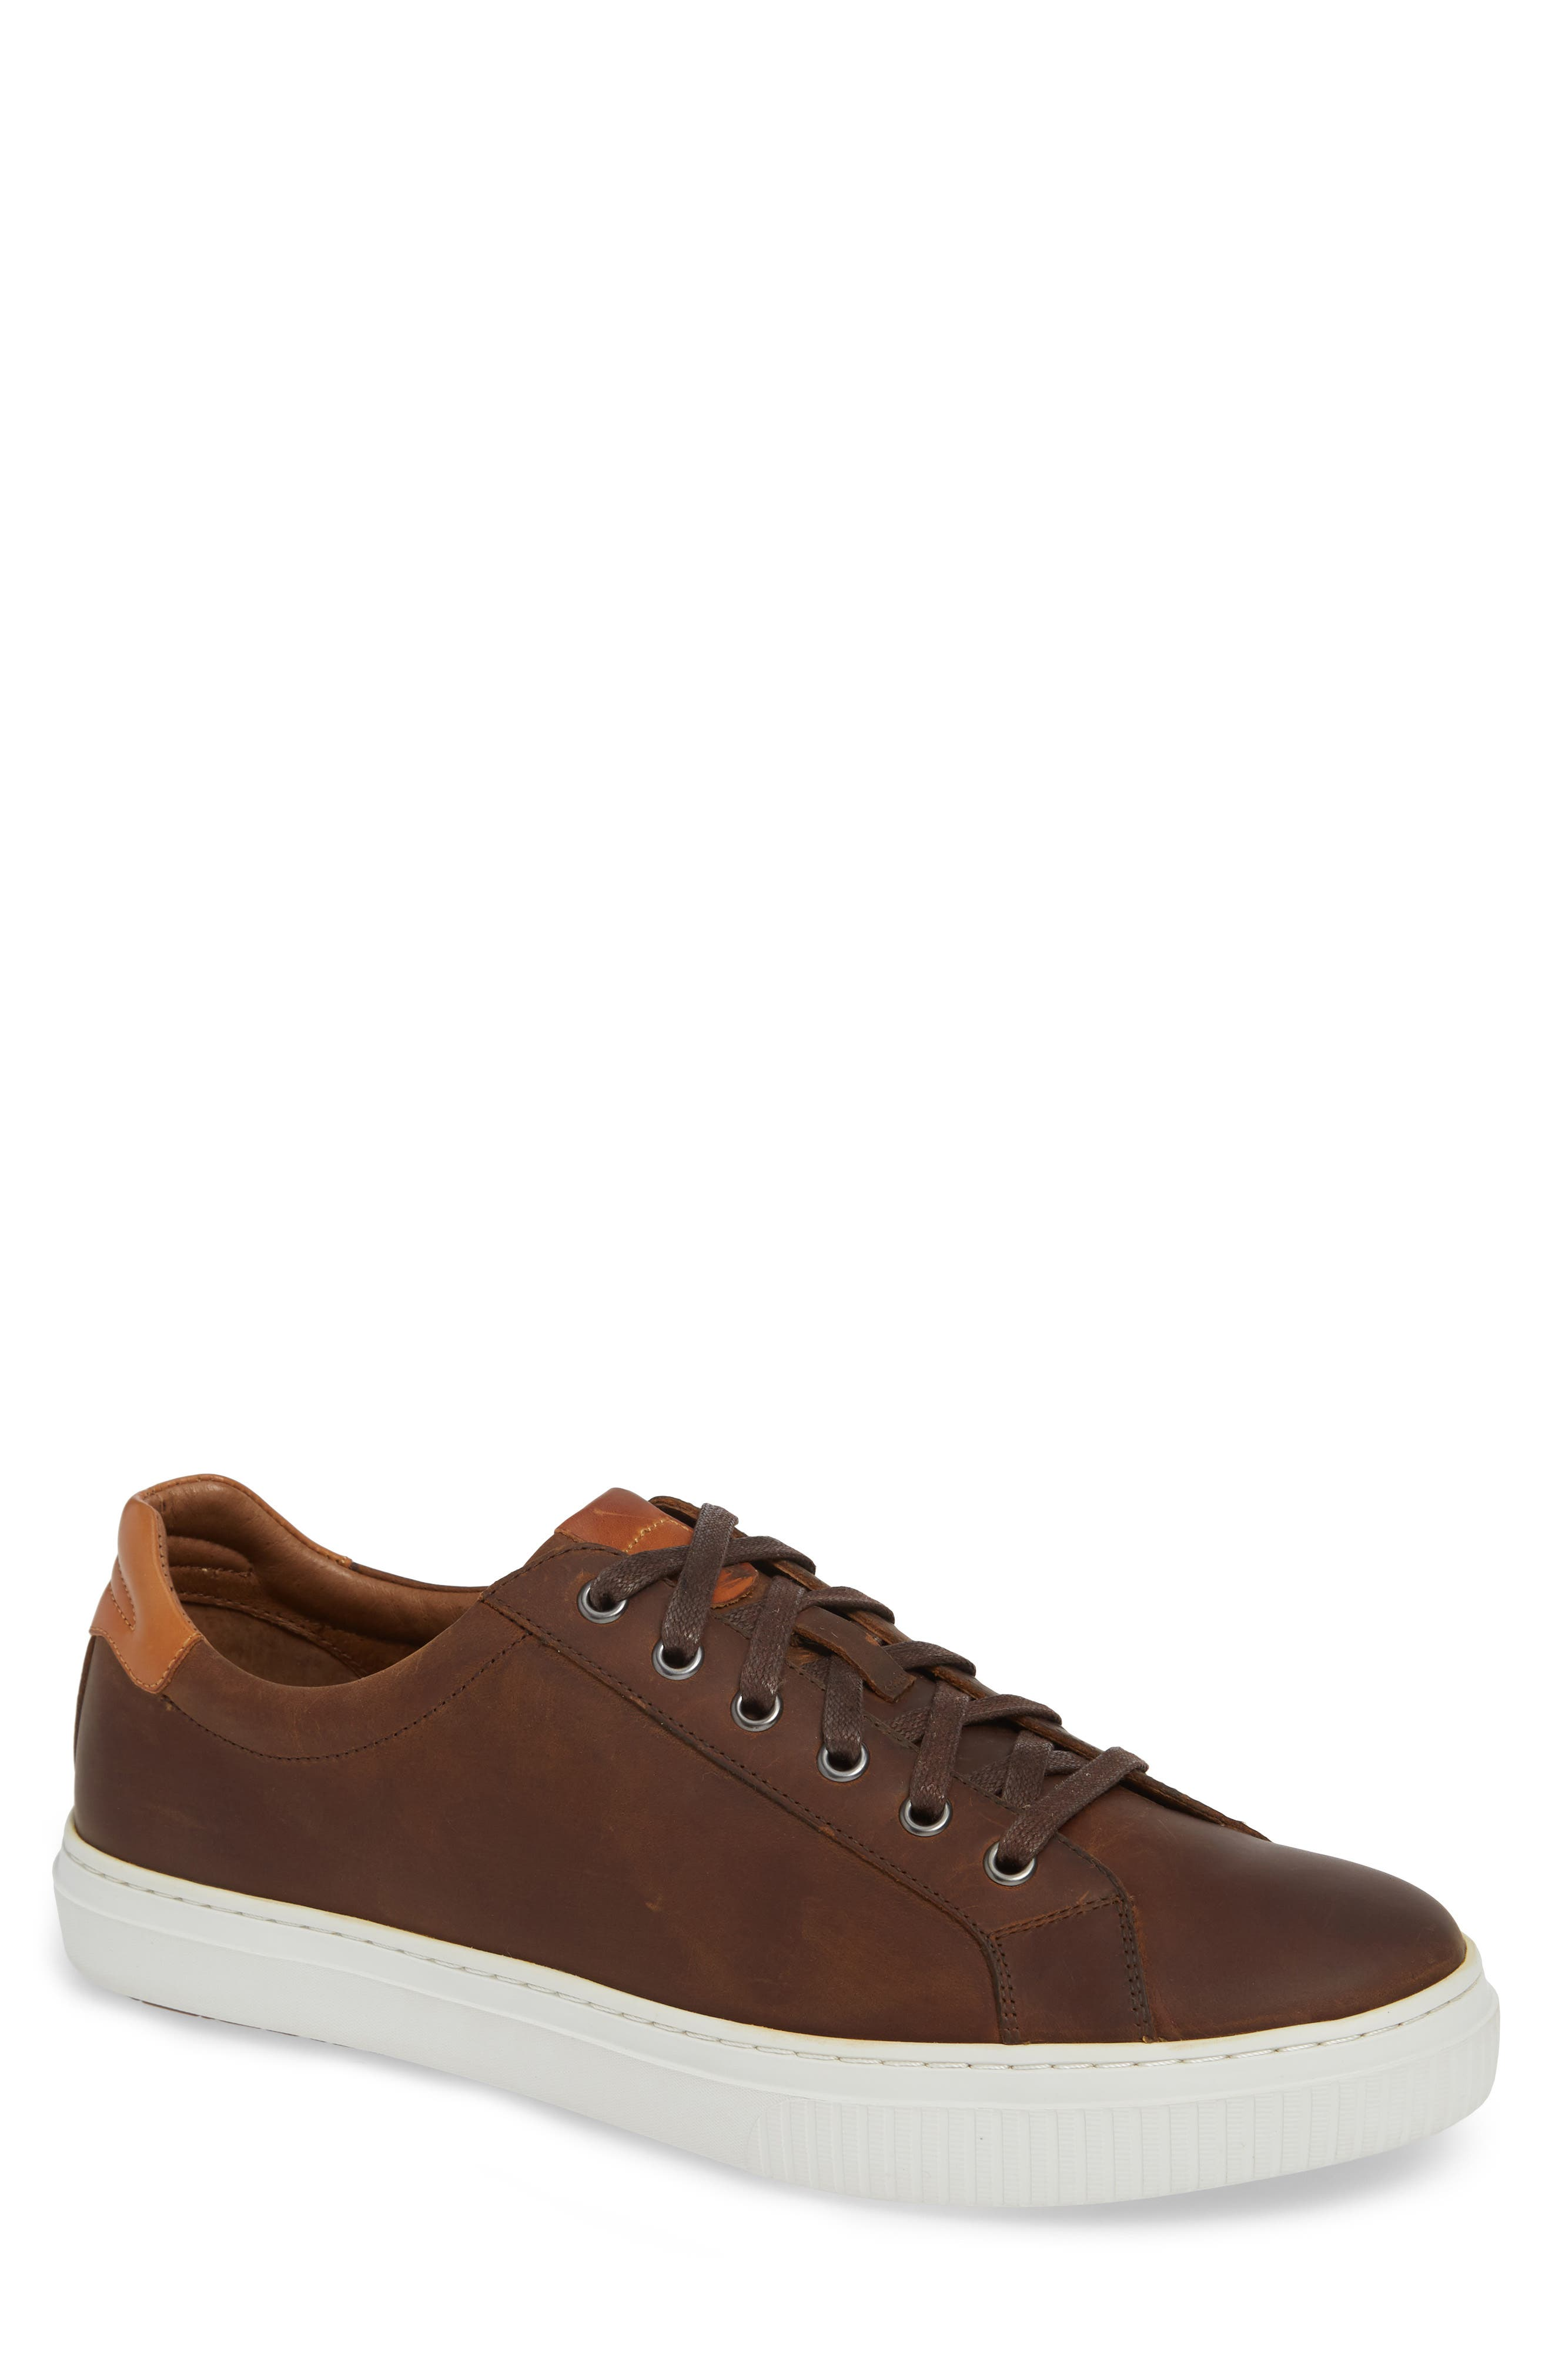 J&M 1850 Toliver Low Top Sneaker, Main, color, TAN LEATHER